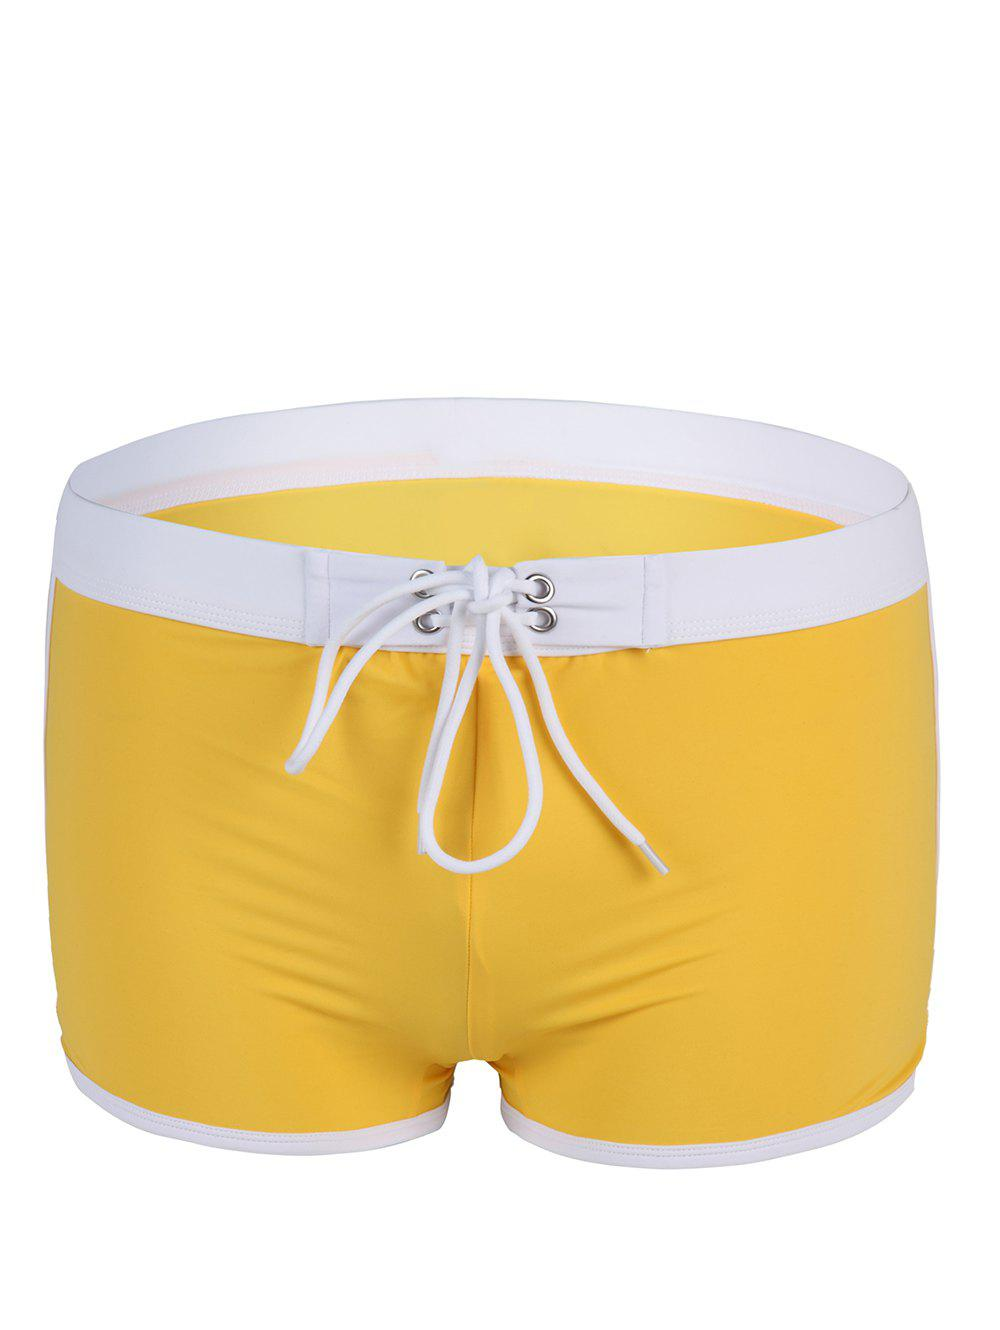 Fashion Low Waist Color Block Lace-Up Boxers Men's Swimming Trunks - YELLOW XL